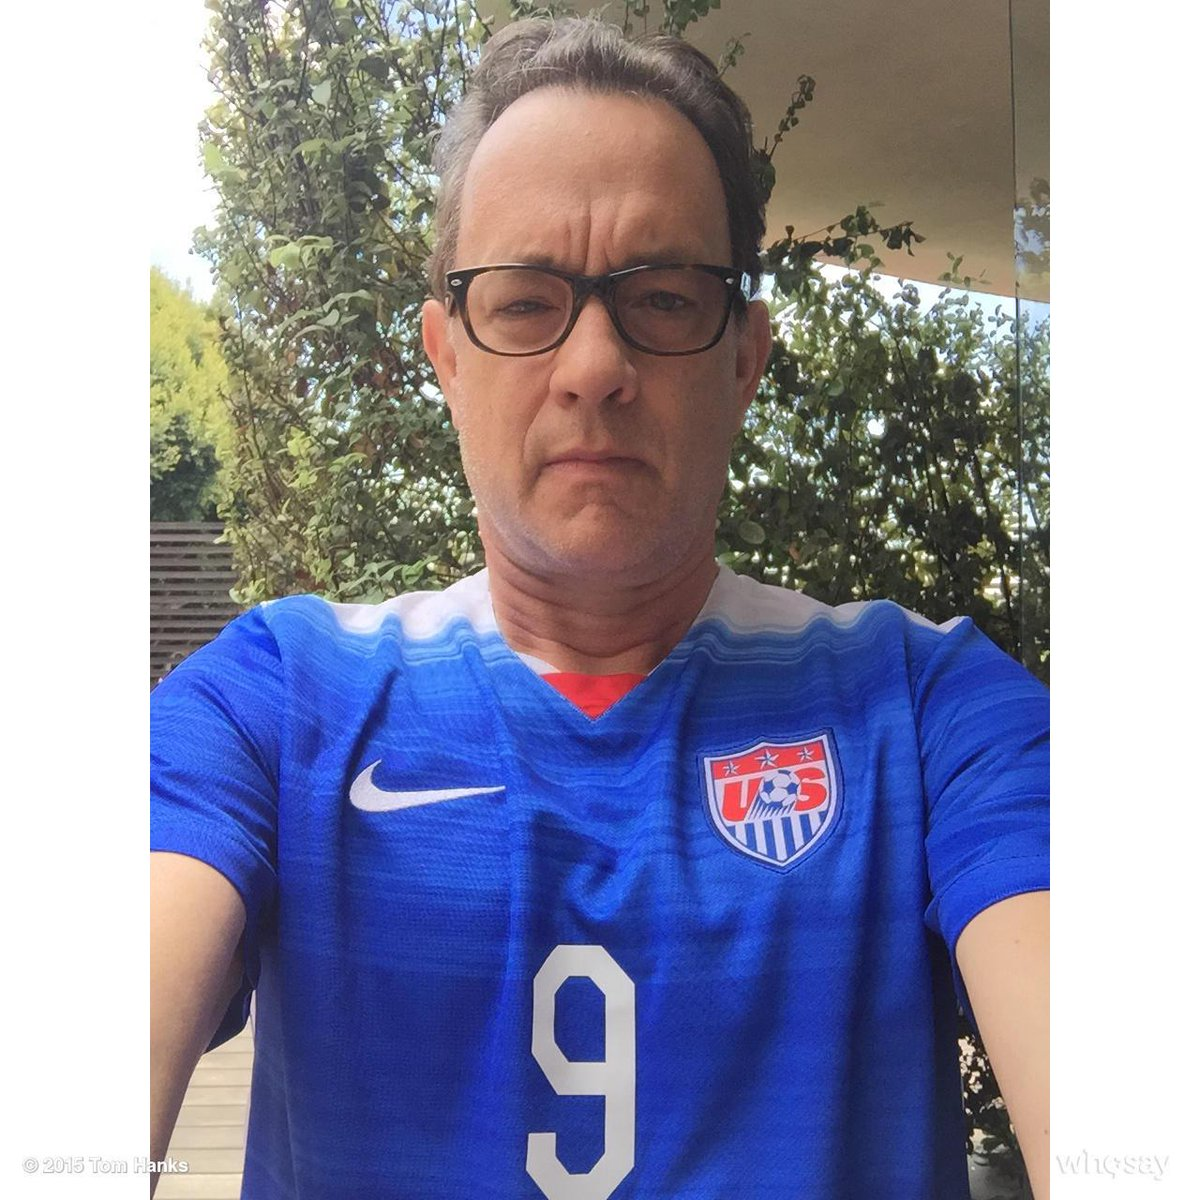 Tom Hanks On Twitter Fake Turf Or Not I M Full Bosom Buds If Coach Ellis Needs Me No Yellow Cards Hanx Http T Co 4et5cyzmjd